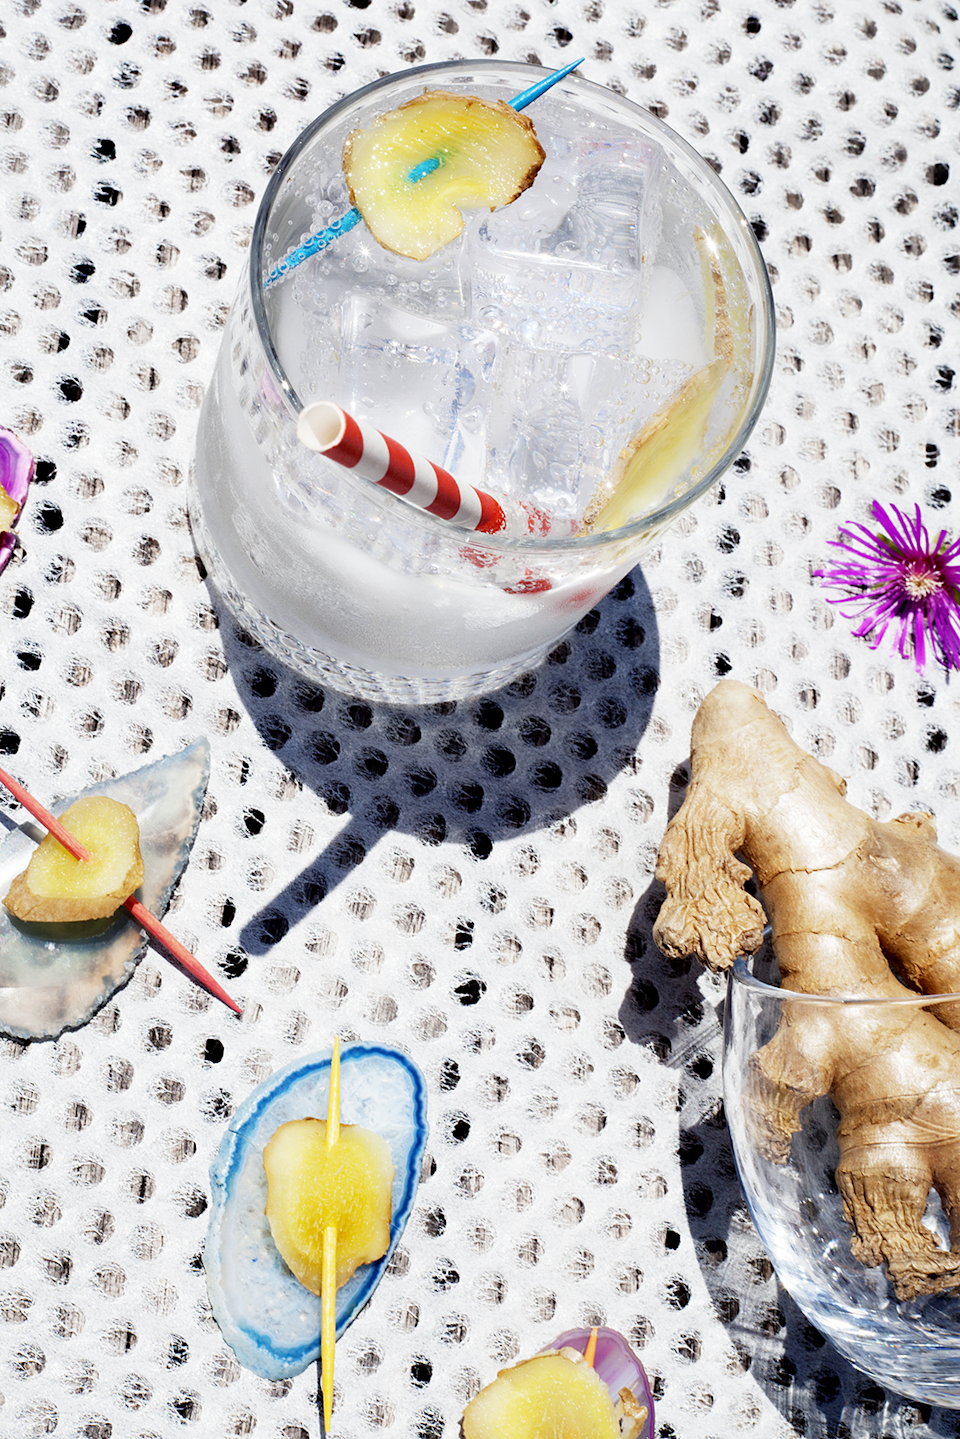 """<strong>Ginger</strong><br><br>Think fresh ginger tea, but with gin. This is more of a garnish than a cocktail, but the ginger adds a noticeable sweet spice.<br><br>Choose a spiced gin to enhance this flavour, such as the oriental spiced <a href=""""http://opihr.com/"""" rel=""""nofollow noopener"""" target=""""_blank"""" data-ylk=""""slk:Opihr"""" class=""""link rapid-noclick-resp"""">Opihr</a> which has a distinct flavour. The gin is made from ingredients spread across the globe, including Indonesian cubeb berriesm, Indian black pepper and Moroccan coriander.<br><br><strong>Ingredients (Makes 1)</strong><br>50ml gin<br>1cm slice of fresh ginger<br>Tonic water<br>Ice<br><br><strong>Method</strong><br>Fill a glass with ice and add your gin. Top with tonic, and slithers of fresh ginger.<span class=""""copyright"""">Photographed by <strong>Roxana Azar</strong></span>"""